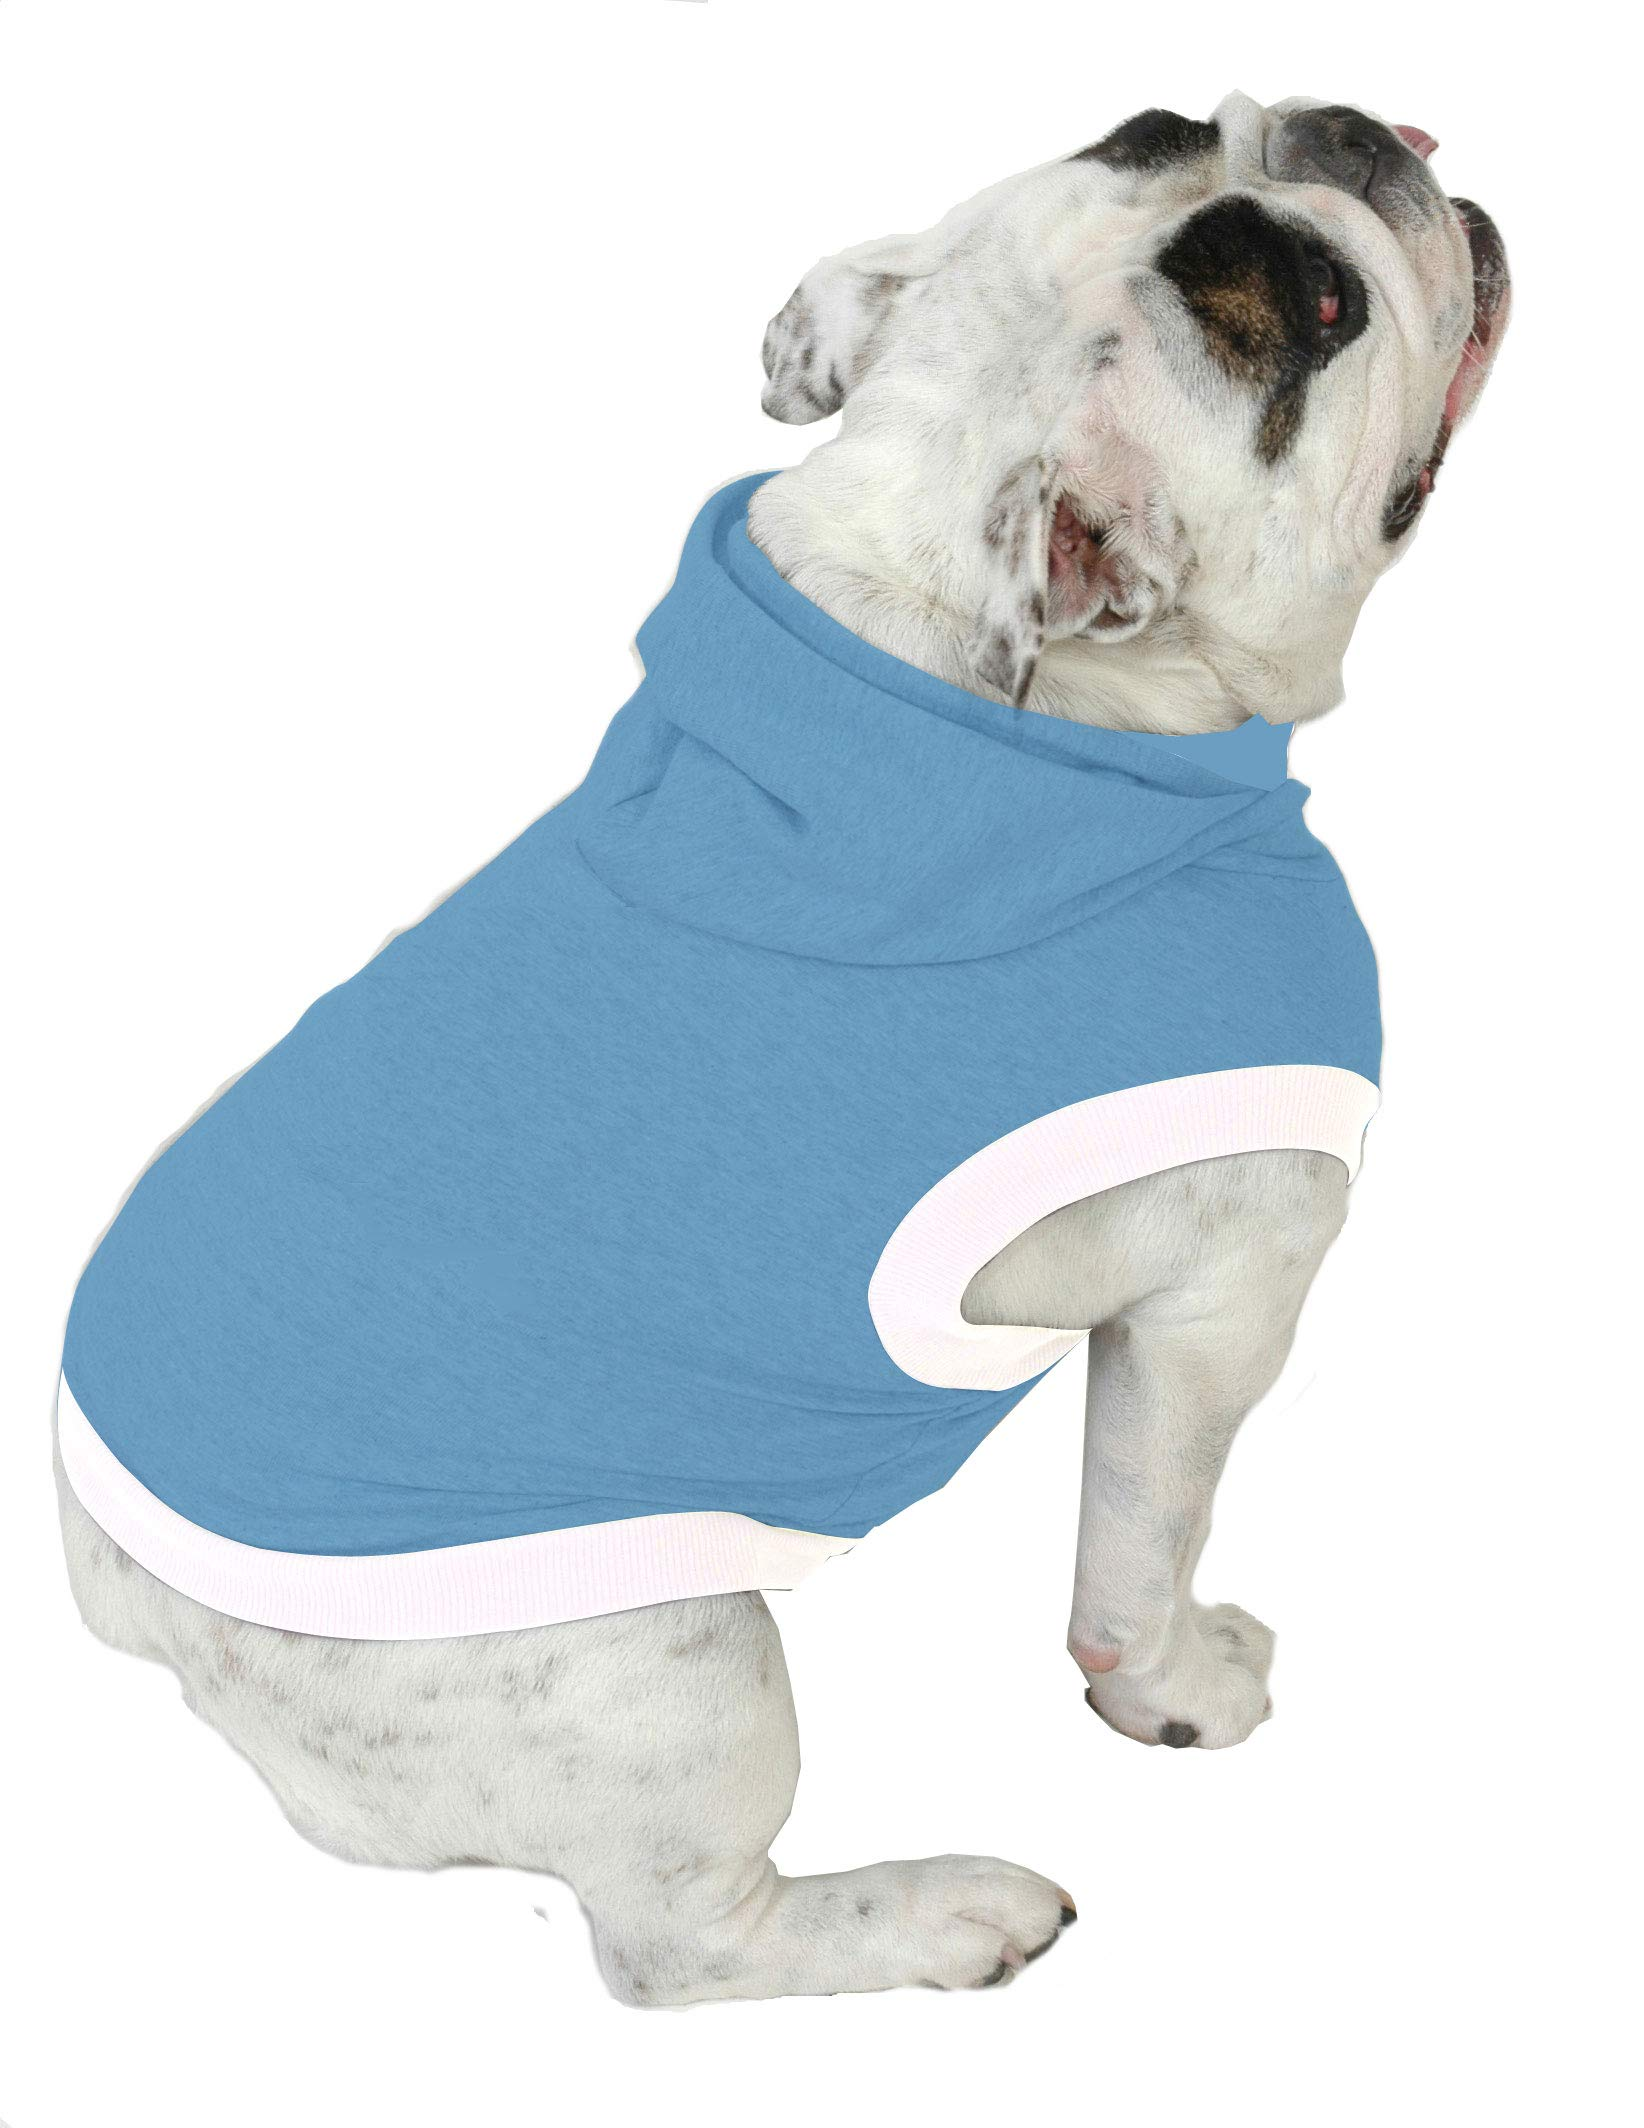 Plus Size Pups English Bulldog Dog Hoodie Tshirt - Beefy Over 8 Colors & Patterns to Choose from (Bigger Than Beefy, Baby Blue)